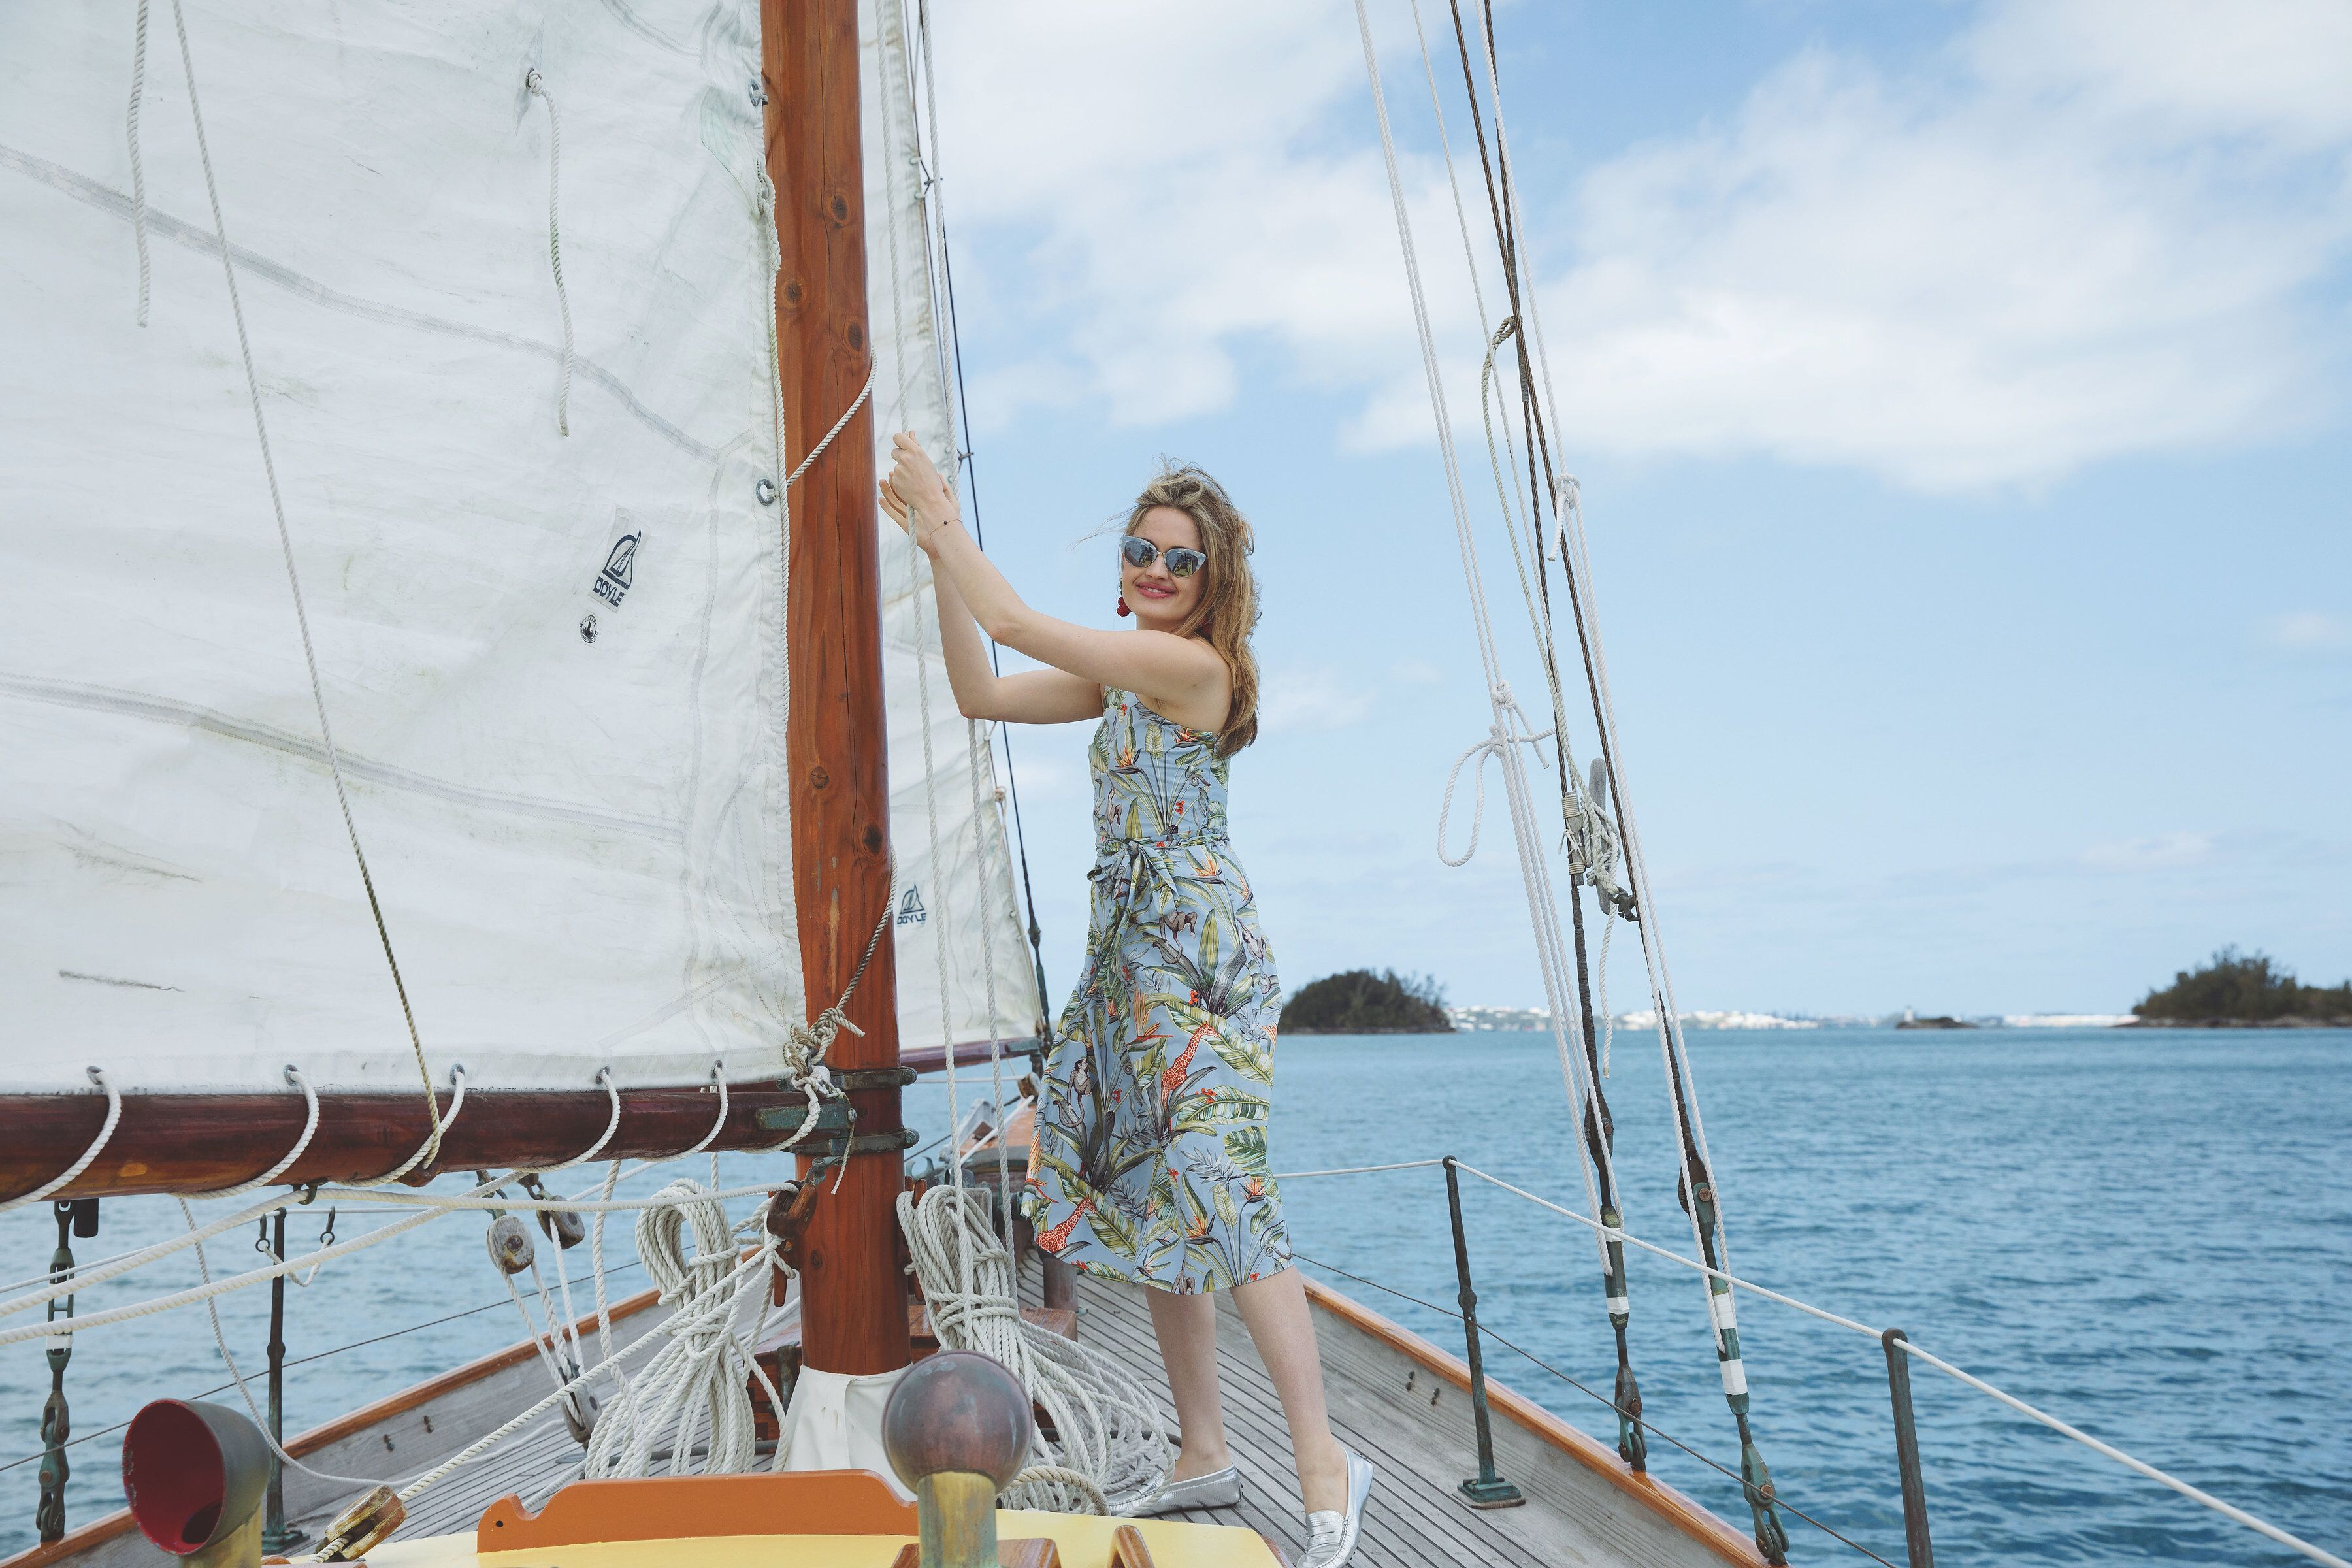 As sailing season commences, a new Bermuda Triangle forms in the Atlantic.